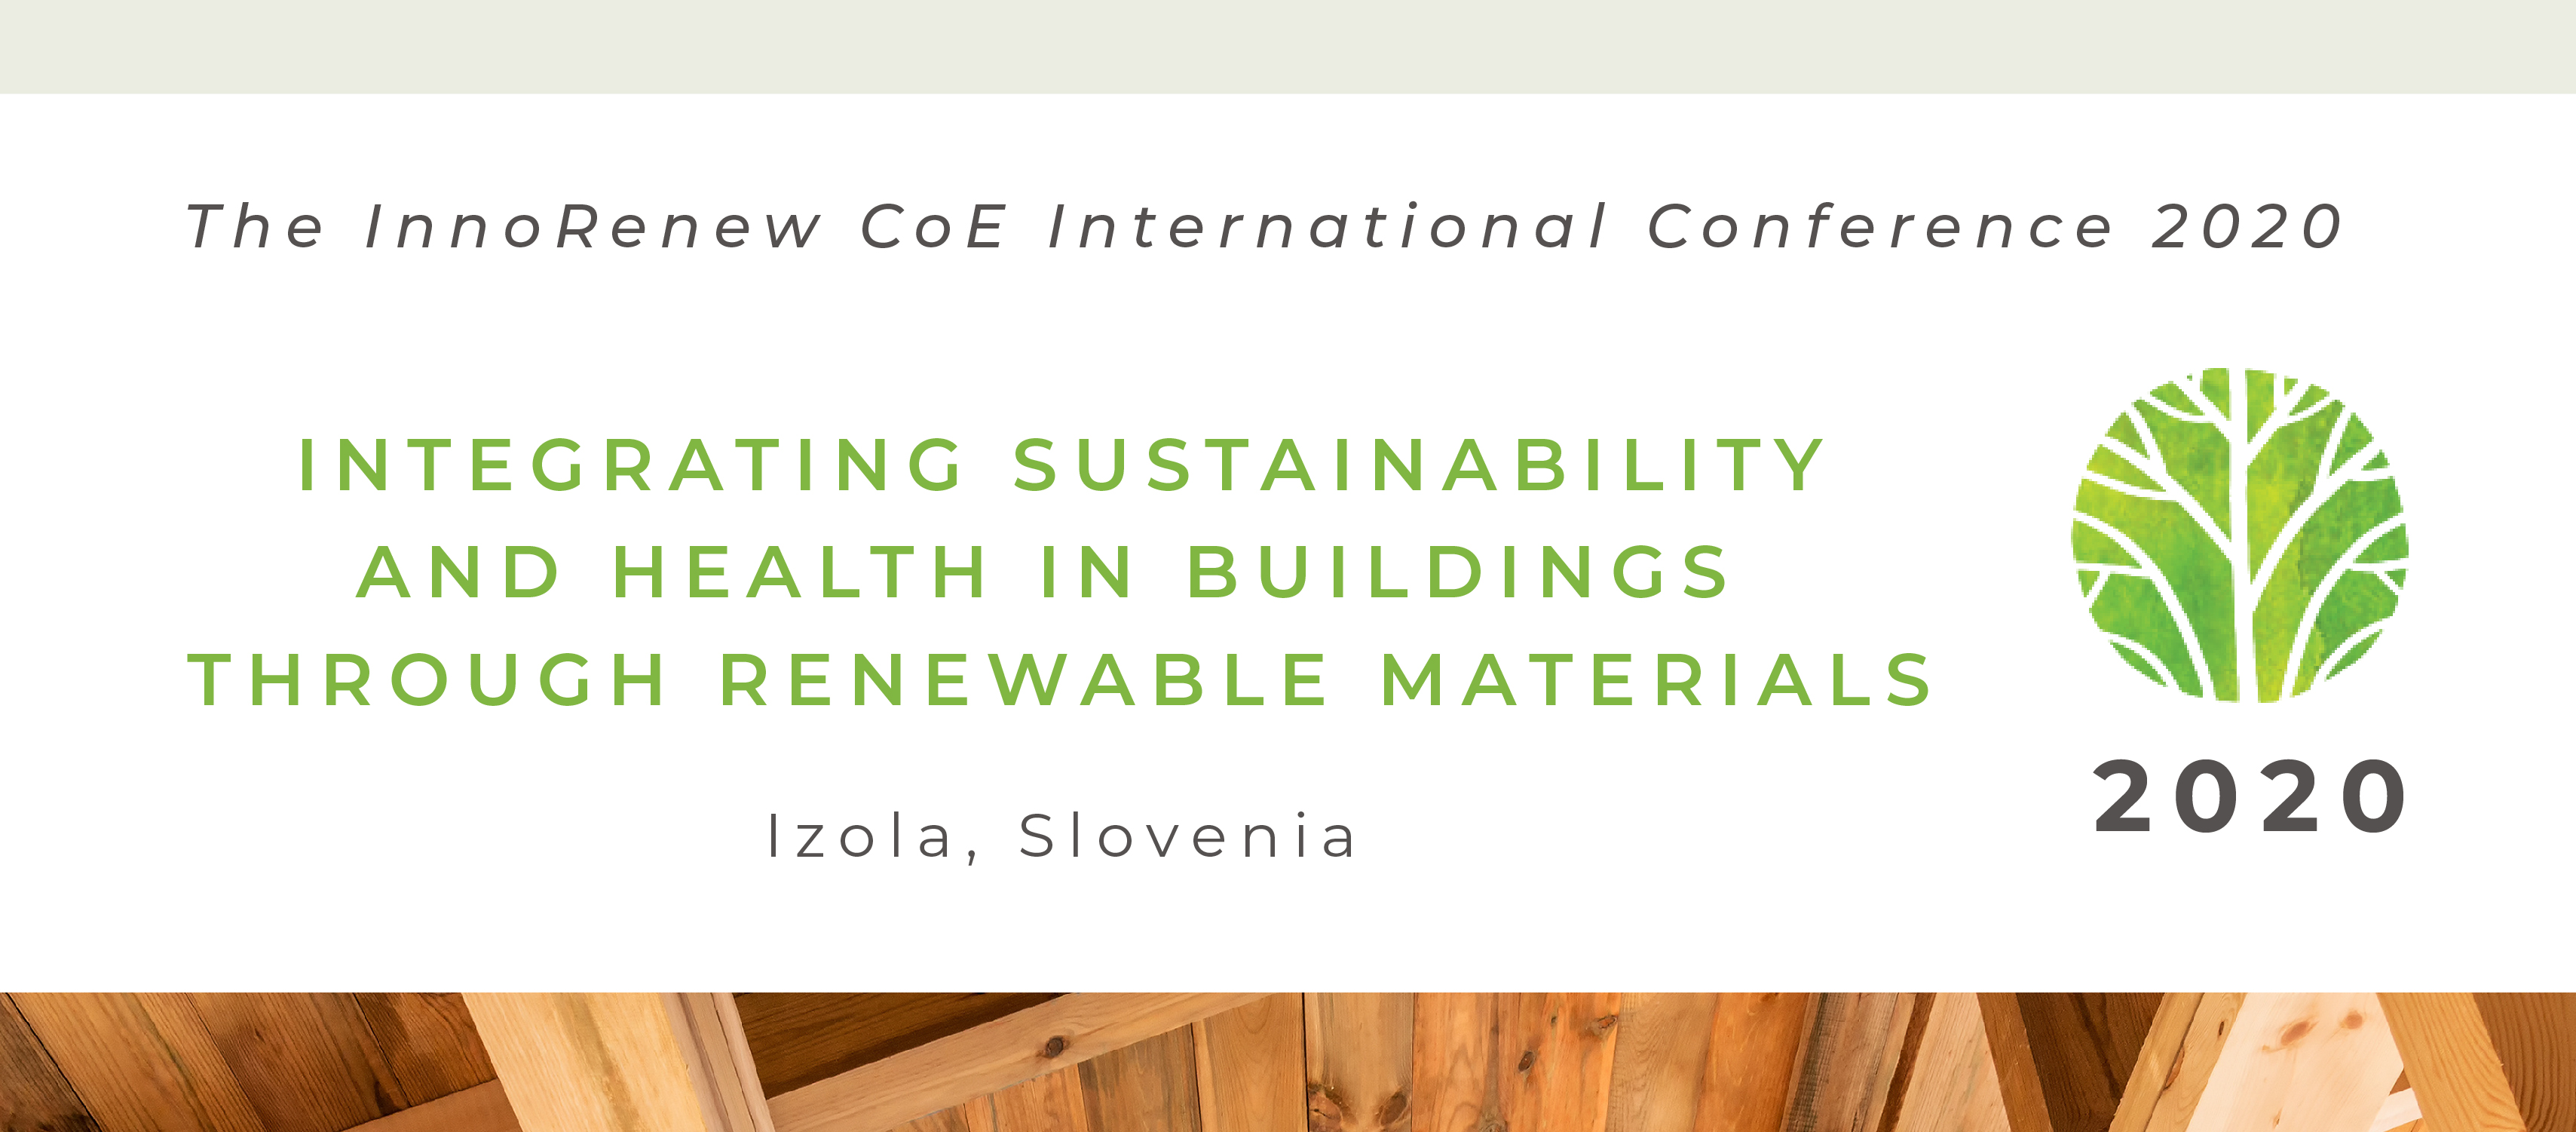 The InnoRenew CoE International Conference 2020 - Integrating sustainability and health in buildings through renewable materials